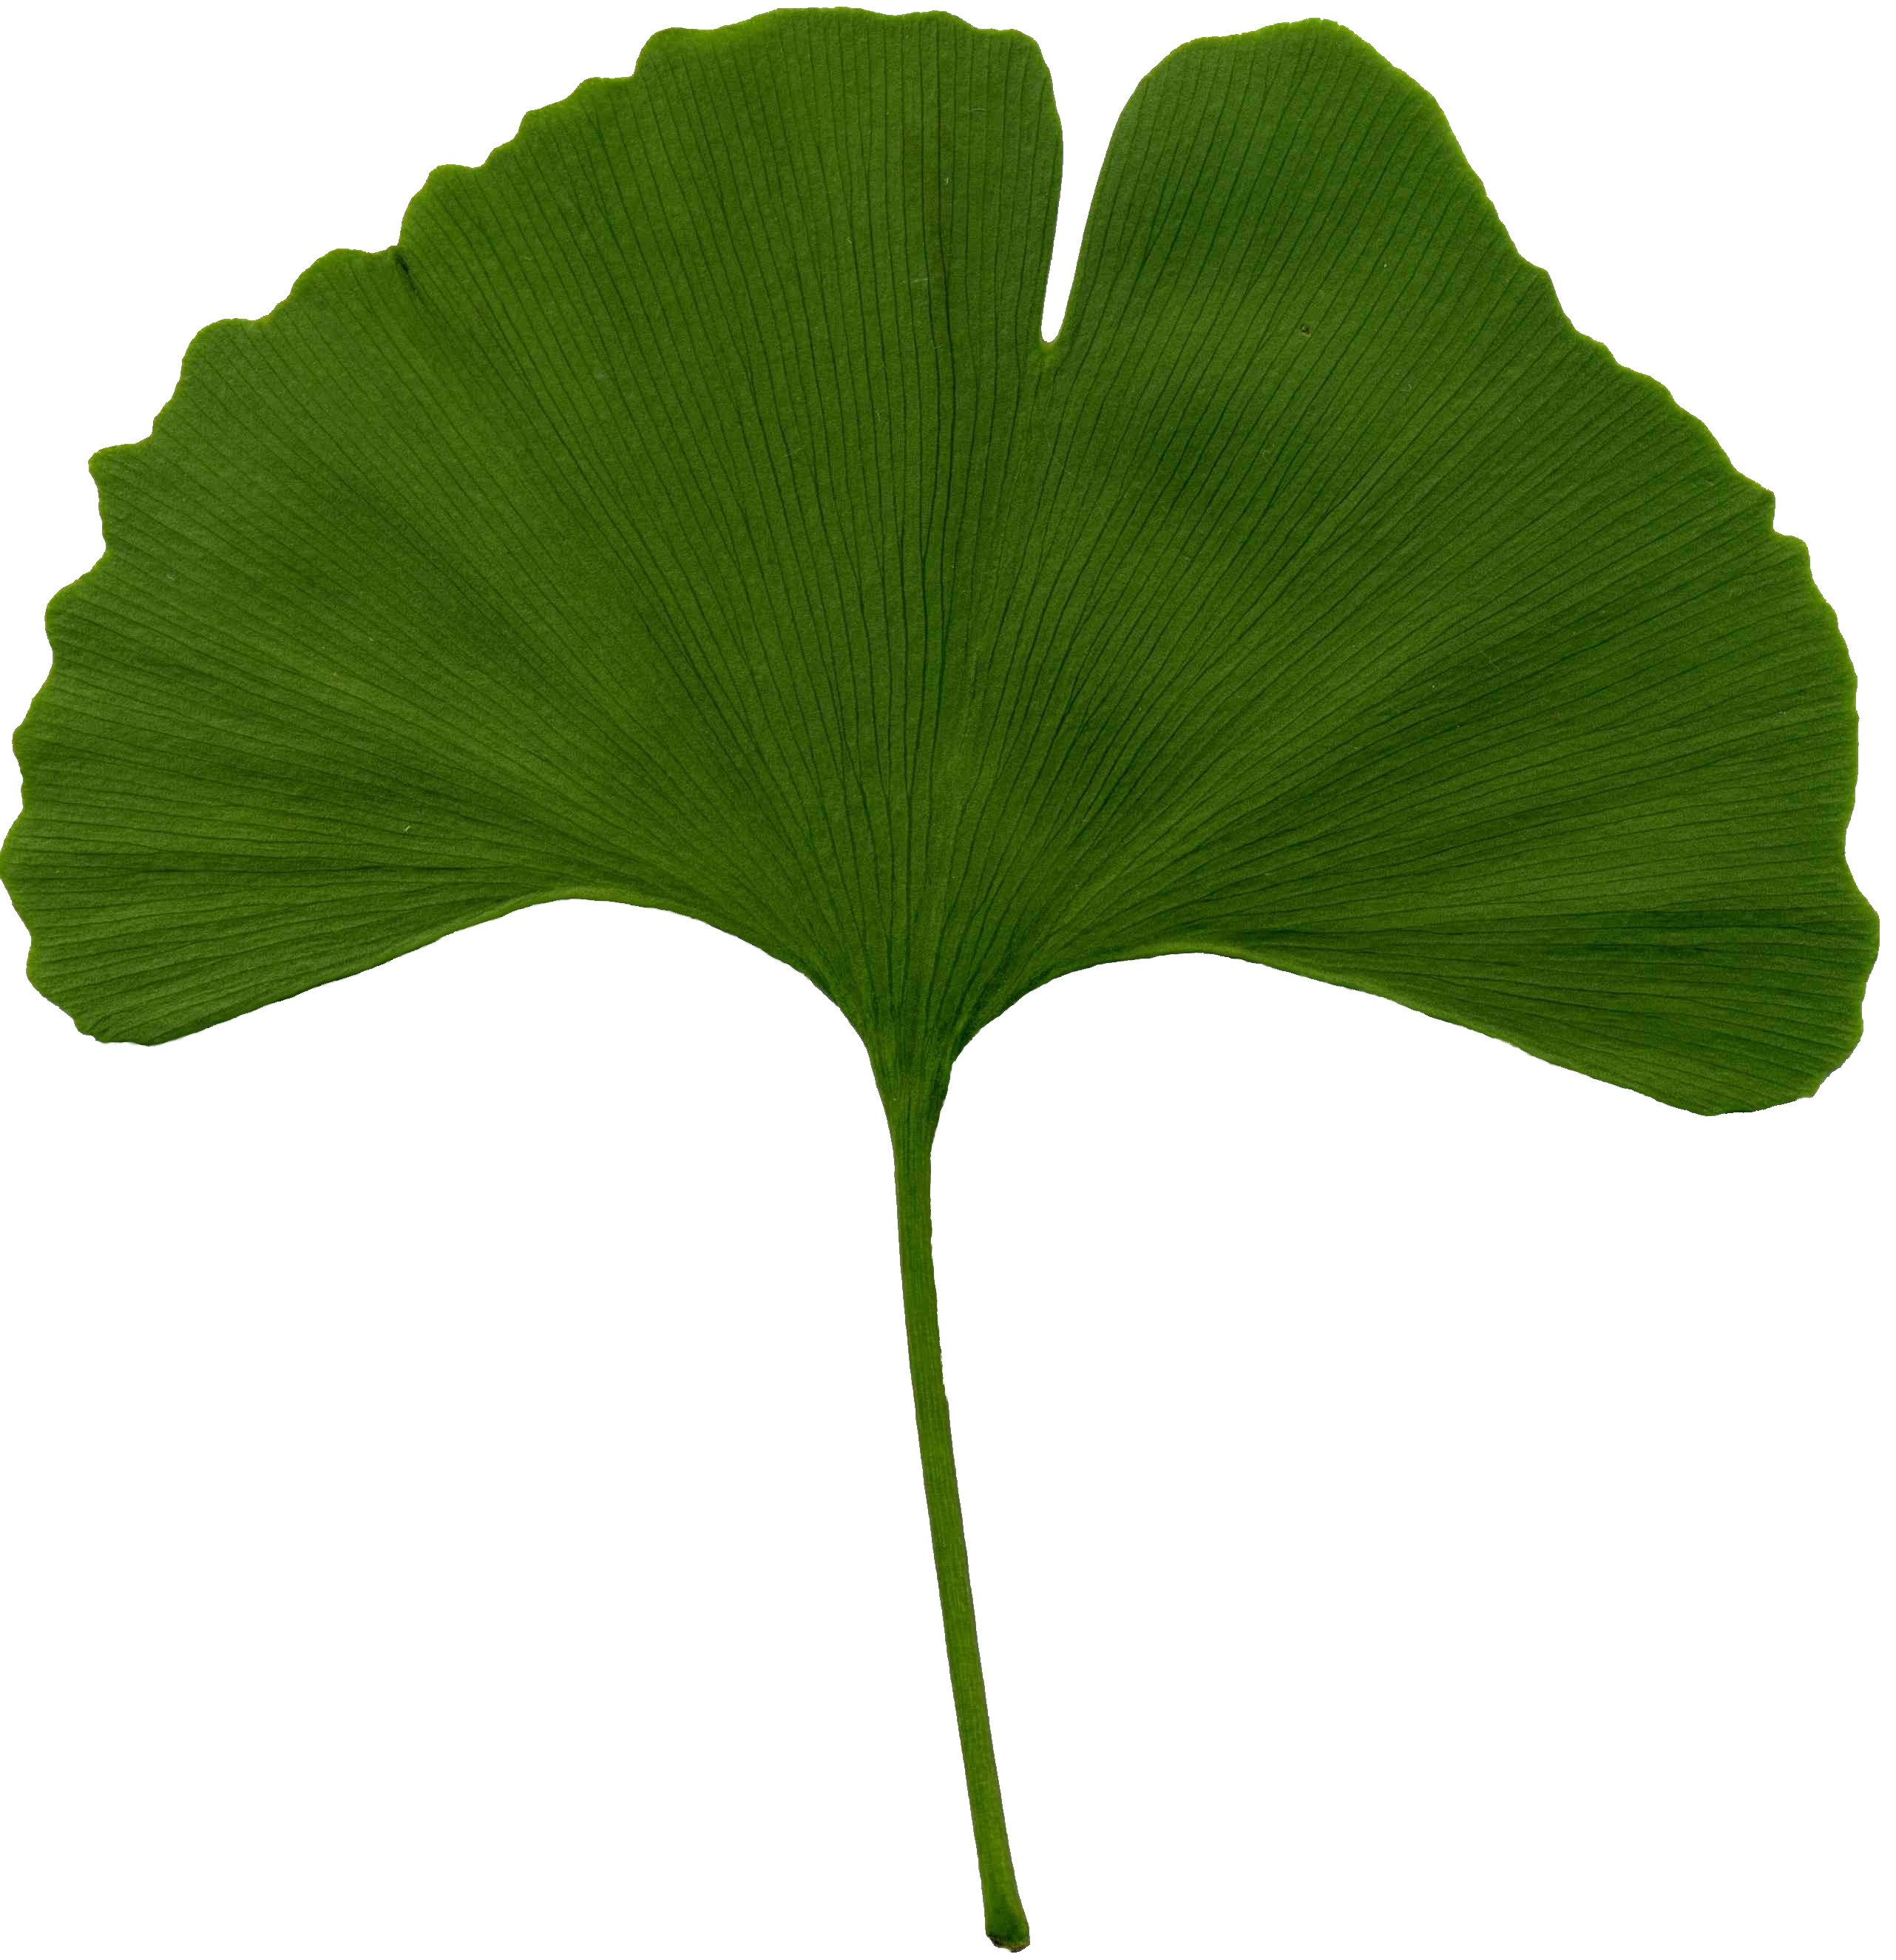 1000+ images about gingko on Pinterest.